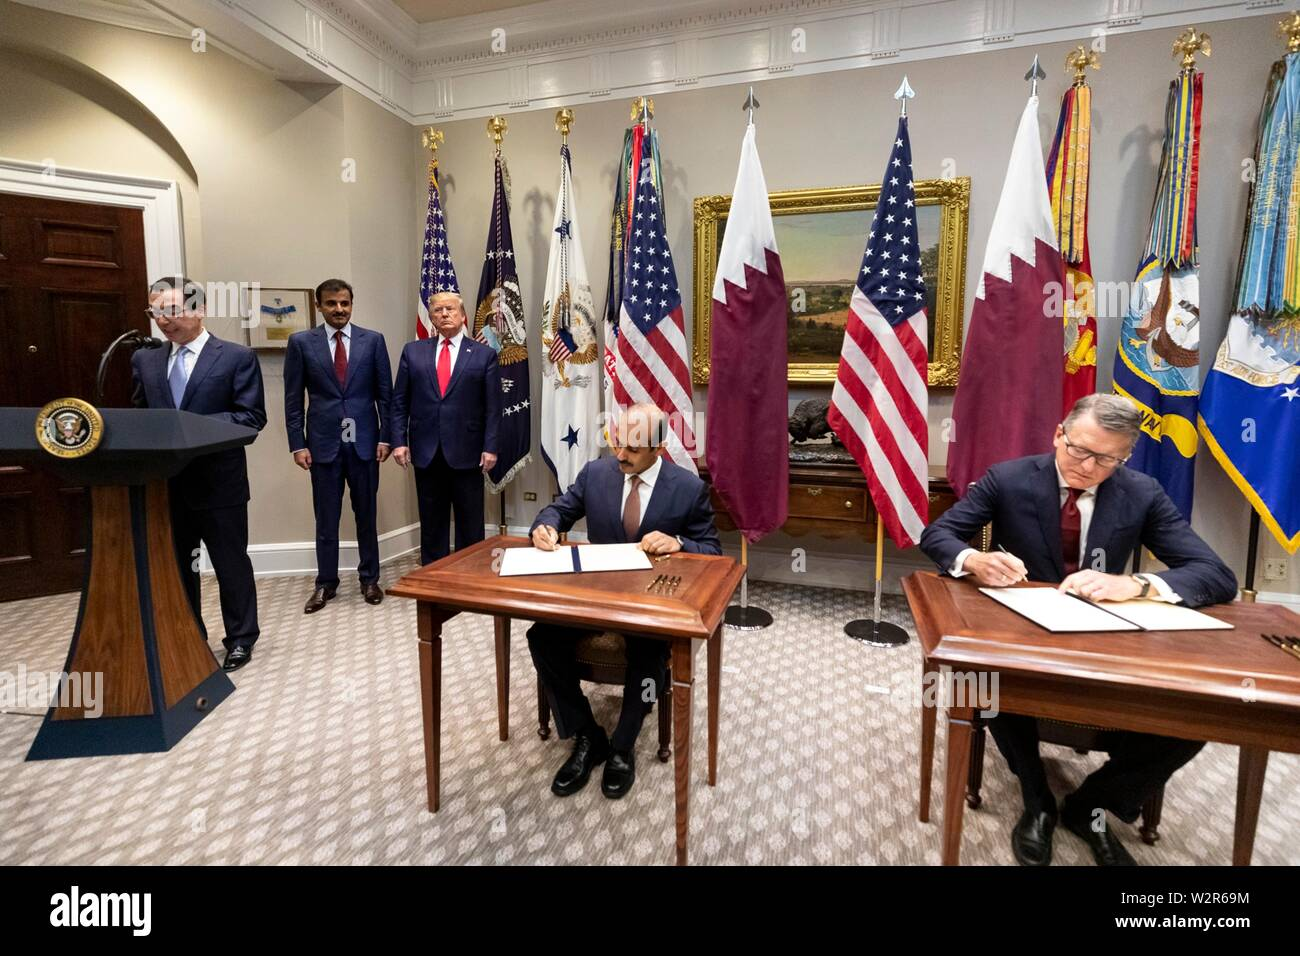 U.S President Donald Trump, stands next to the Emir of Qatar, Tamin bin Hamad Al Thani as they watch the signing of a commercial agreement in the Roosevelt Room of the White House July 9, 2019 in Washington, DC. U.S Treasury Secretary Steve Mnuchin, left, addresses the delegation. - Stock Image